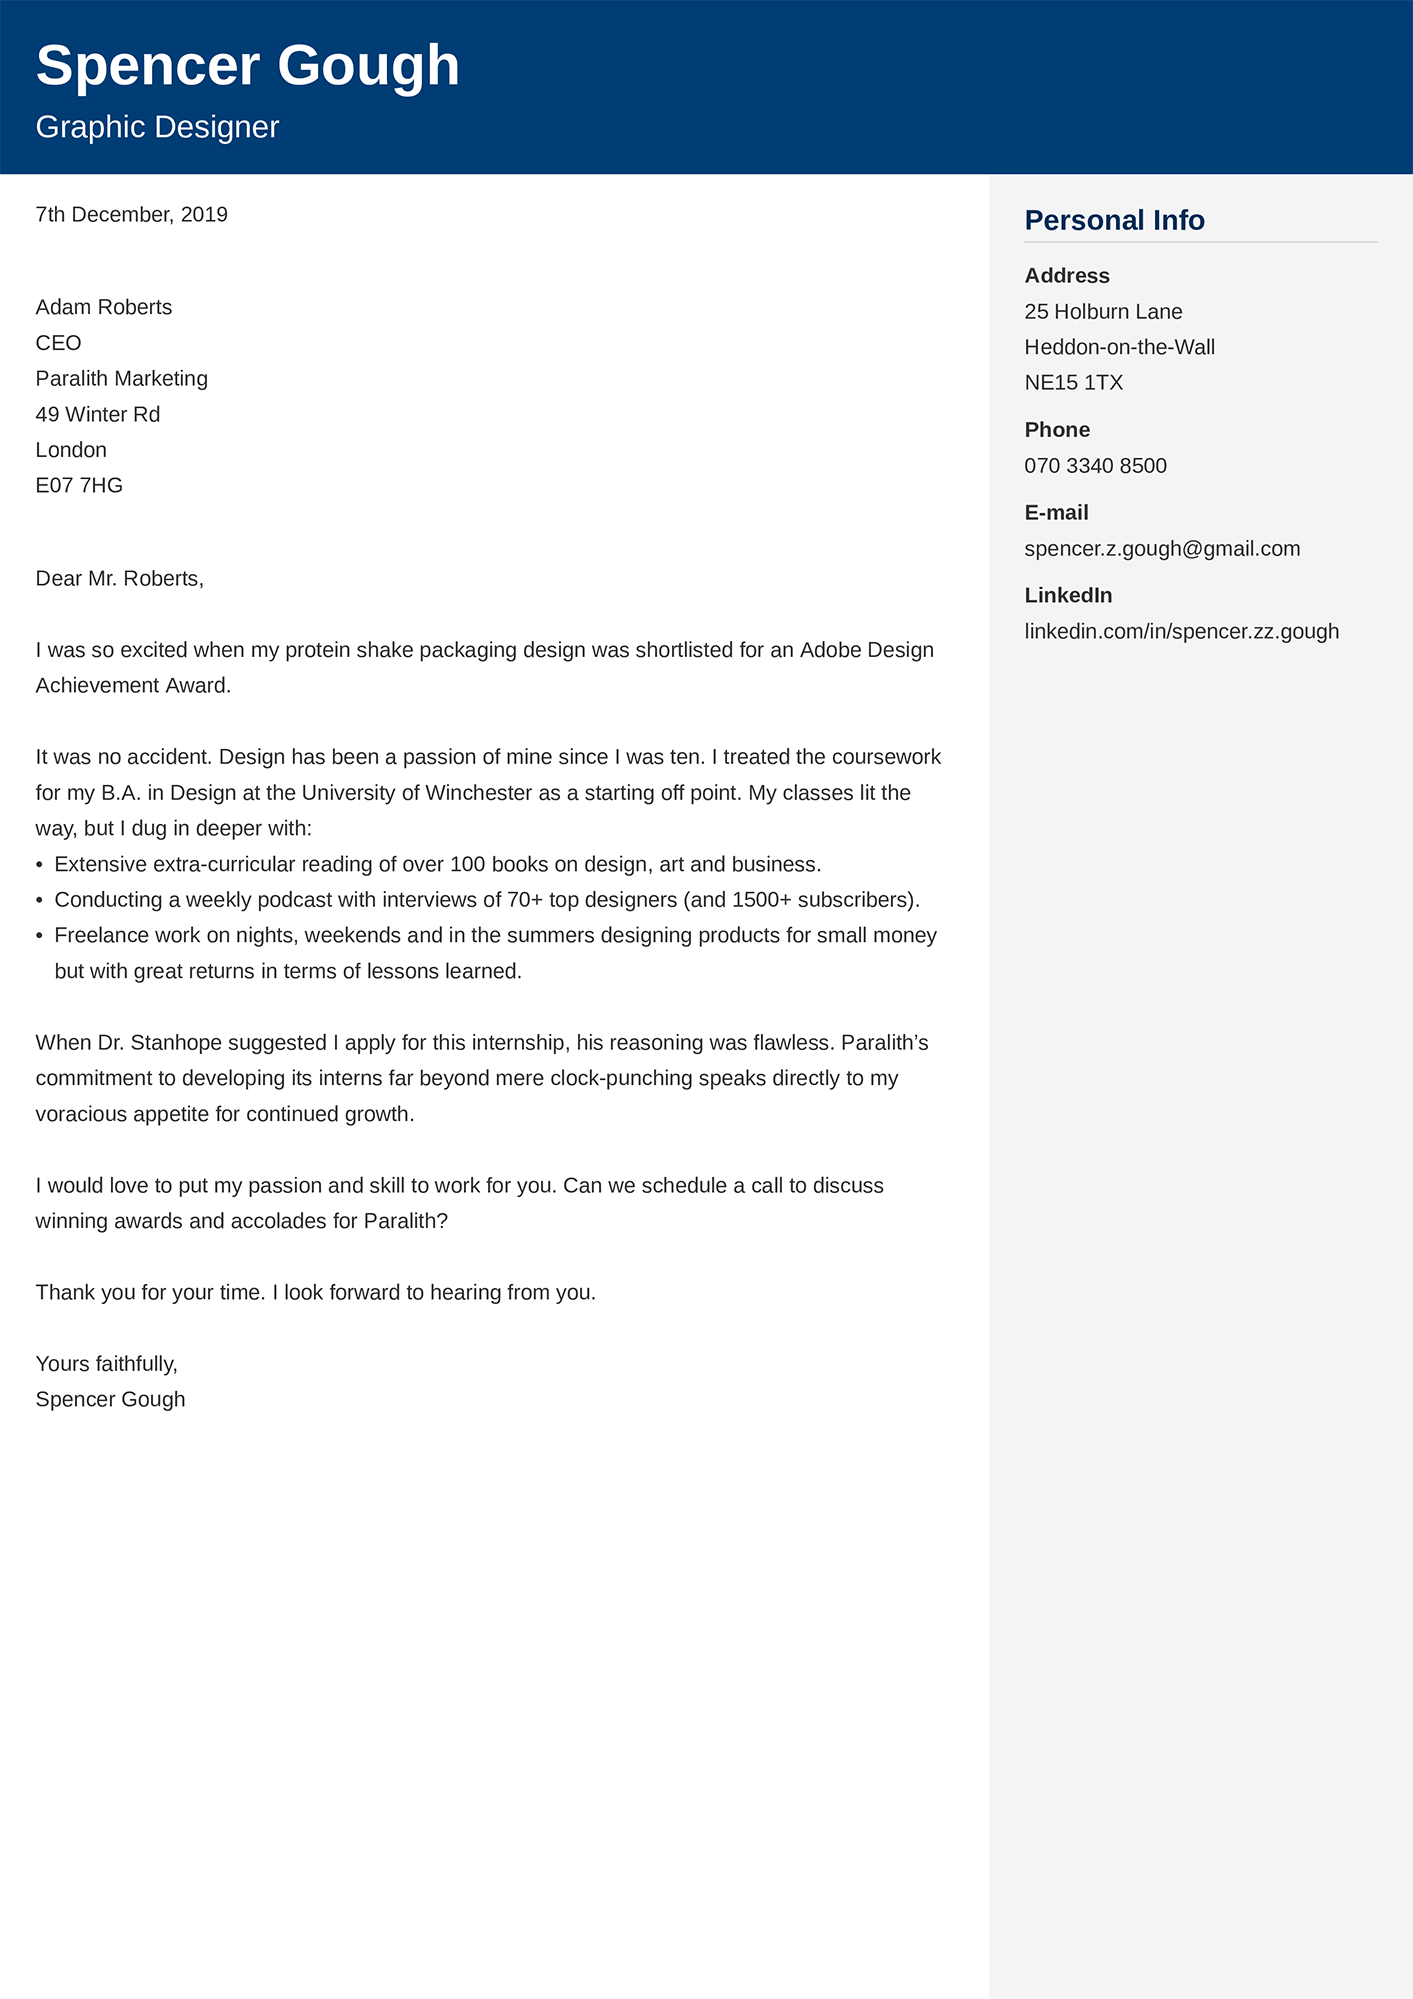 Example of a internship Cover Letter